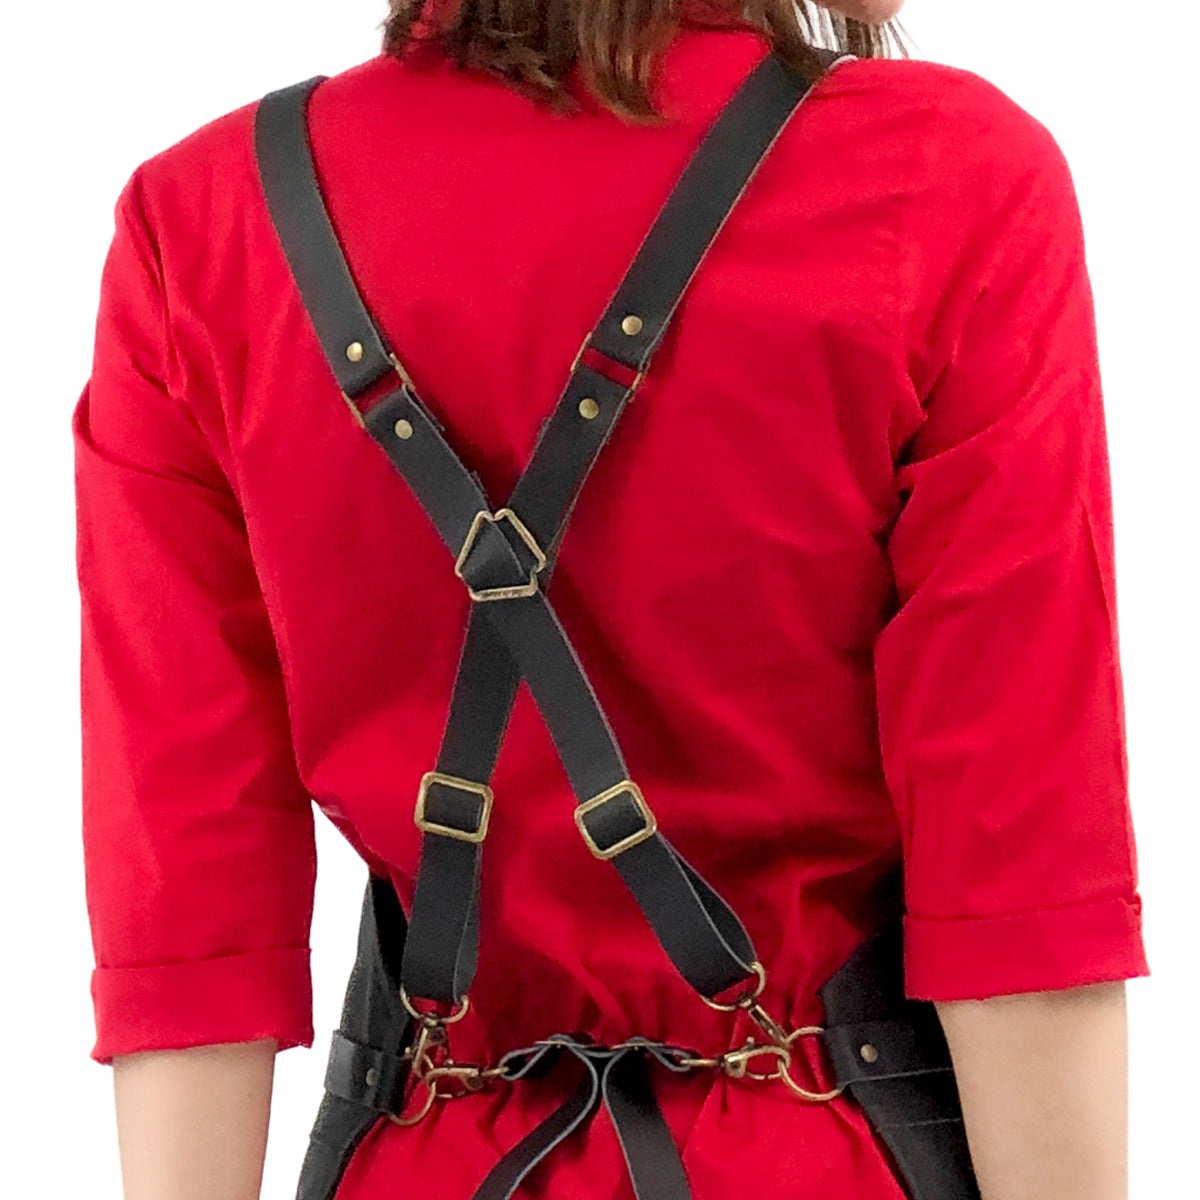 Under Ny Sky Full Leather Apron: Quick Release Cross-back Straps